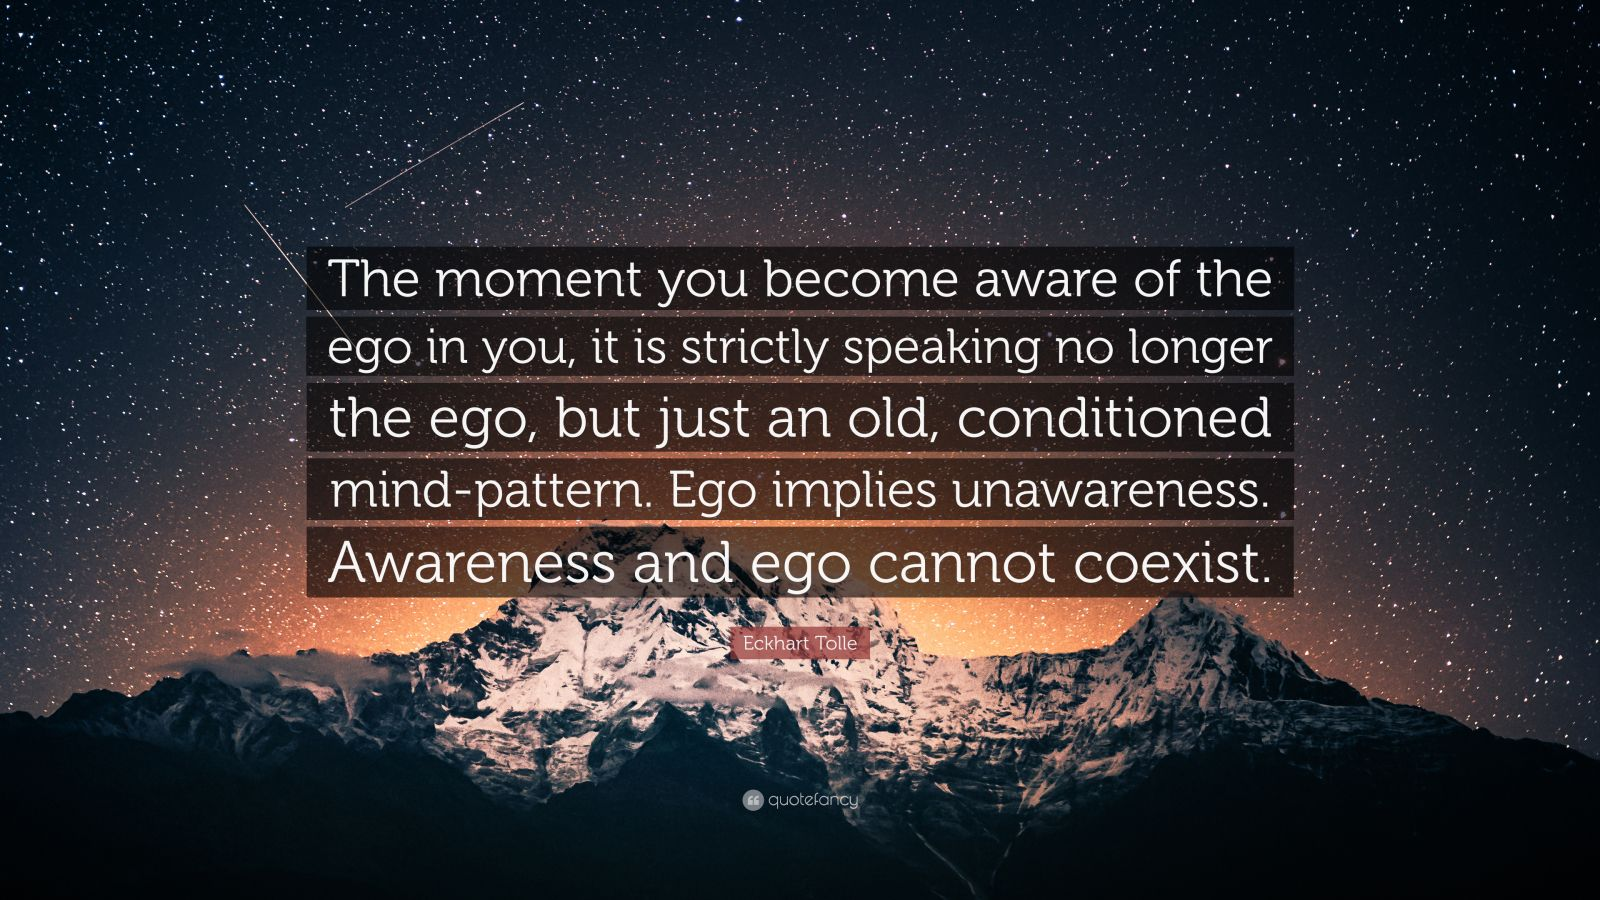 """Eckhart Tolle Quote: """"The moment you become aware of the ego in you, it is strictly speaking no longer the ego, but just an old, conditioned mind-pattern. Ego implies unawareness. Awareness and ego cannot coexist."""""""